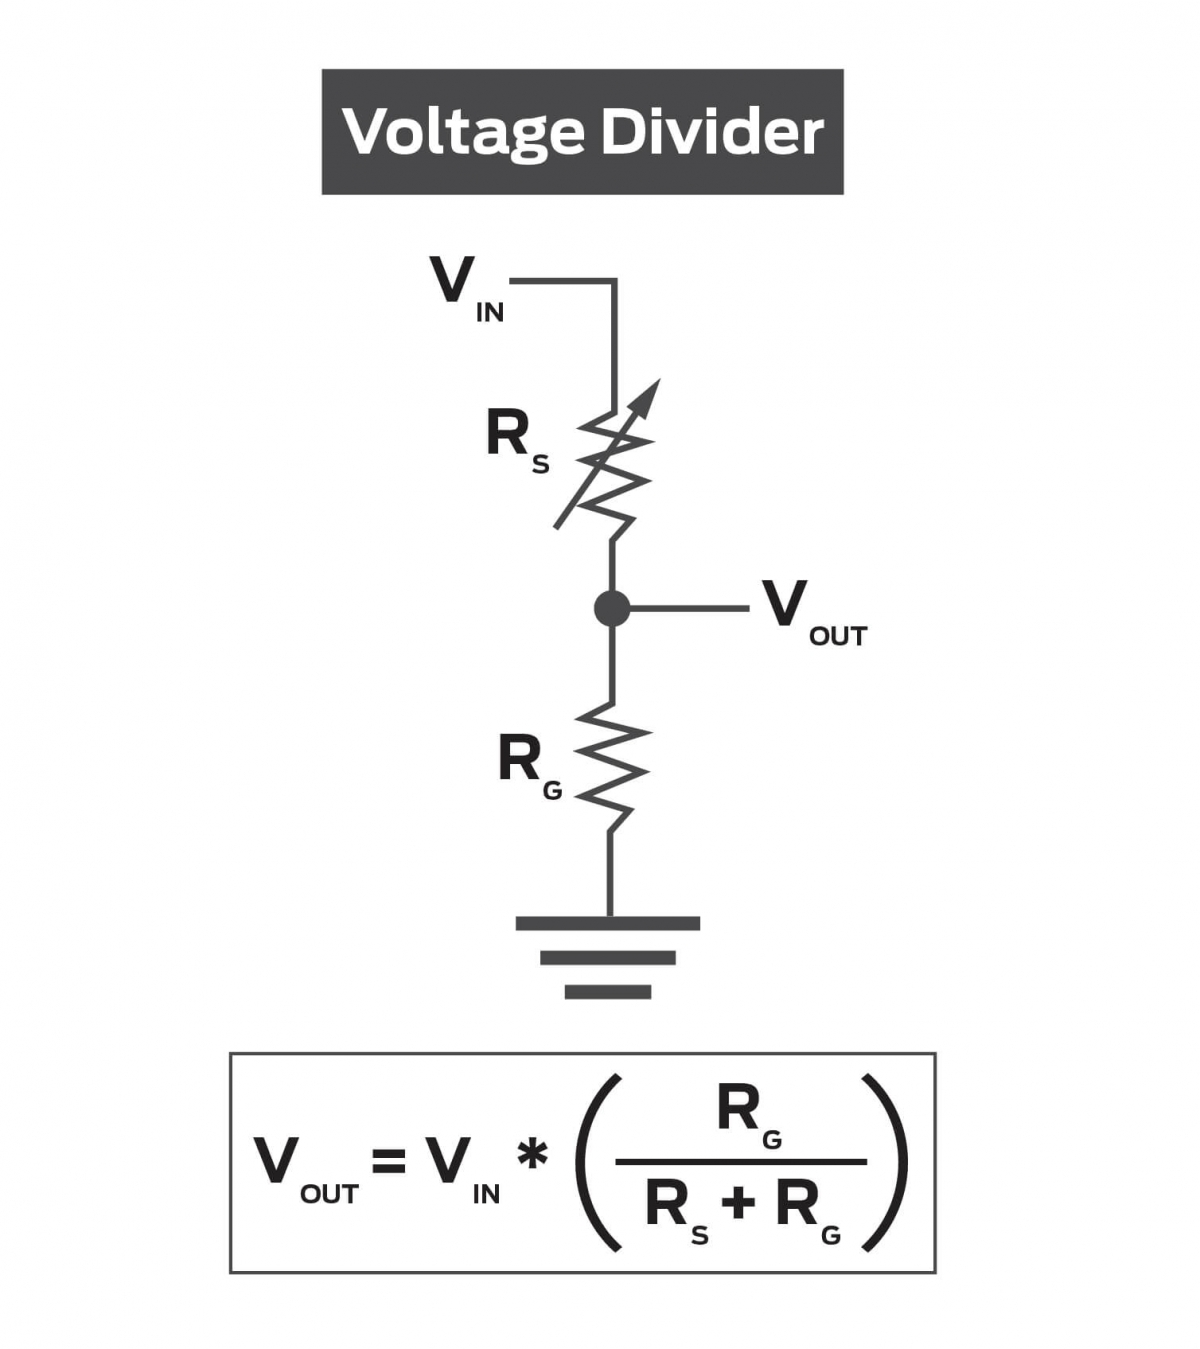 voltage divider diagram